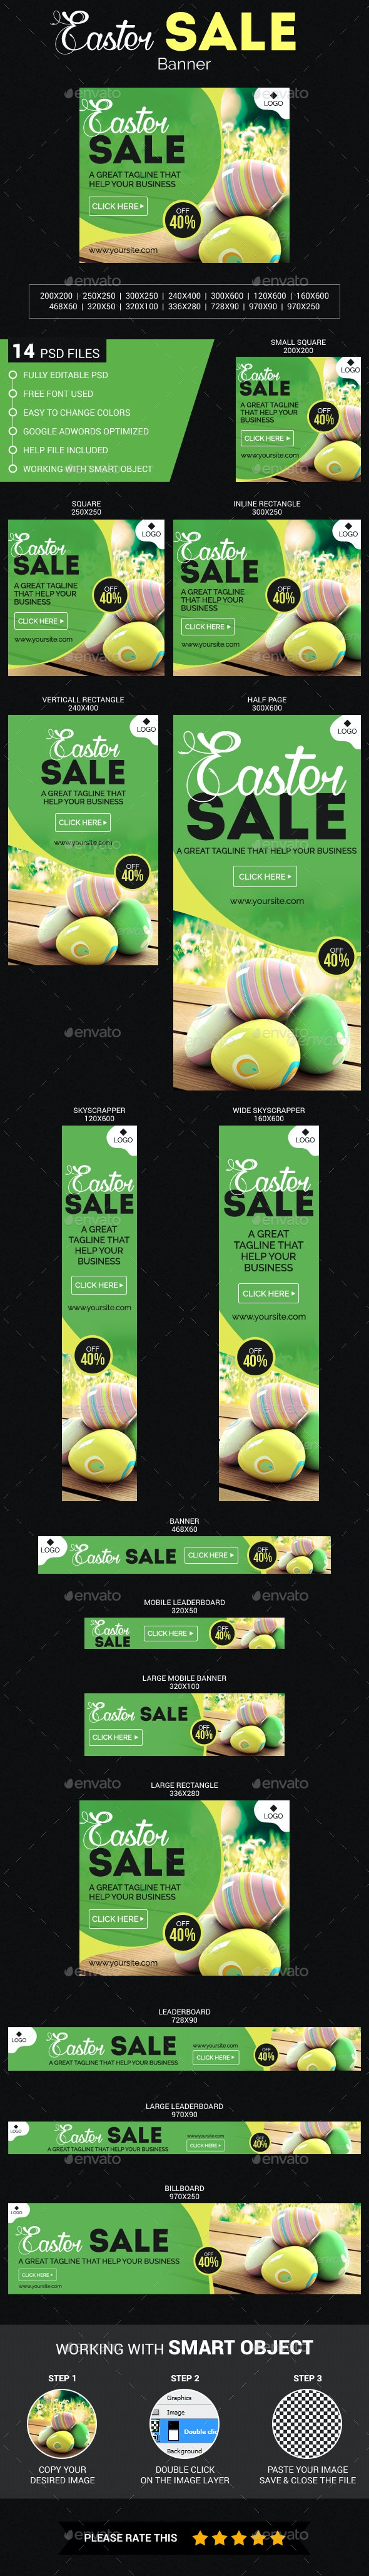 Easter Sale - Banners & Ads Web Elements